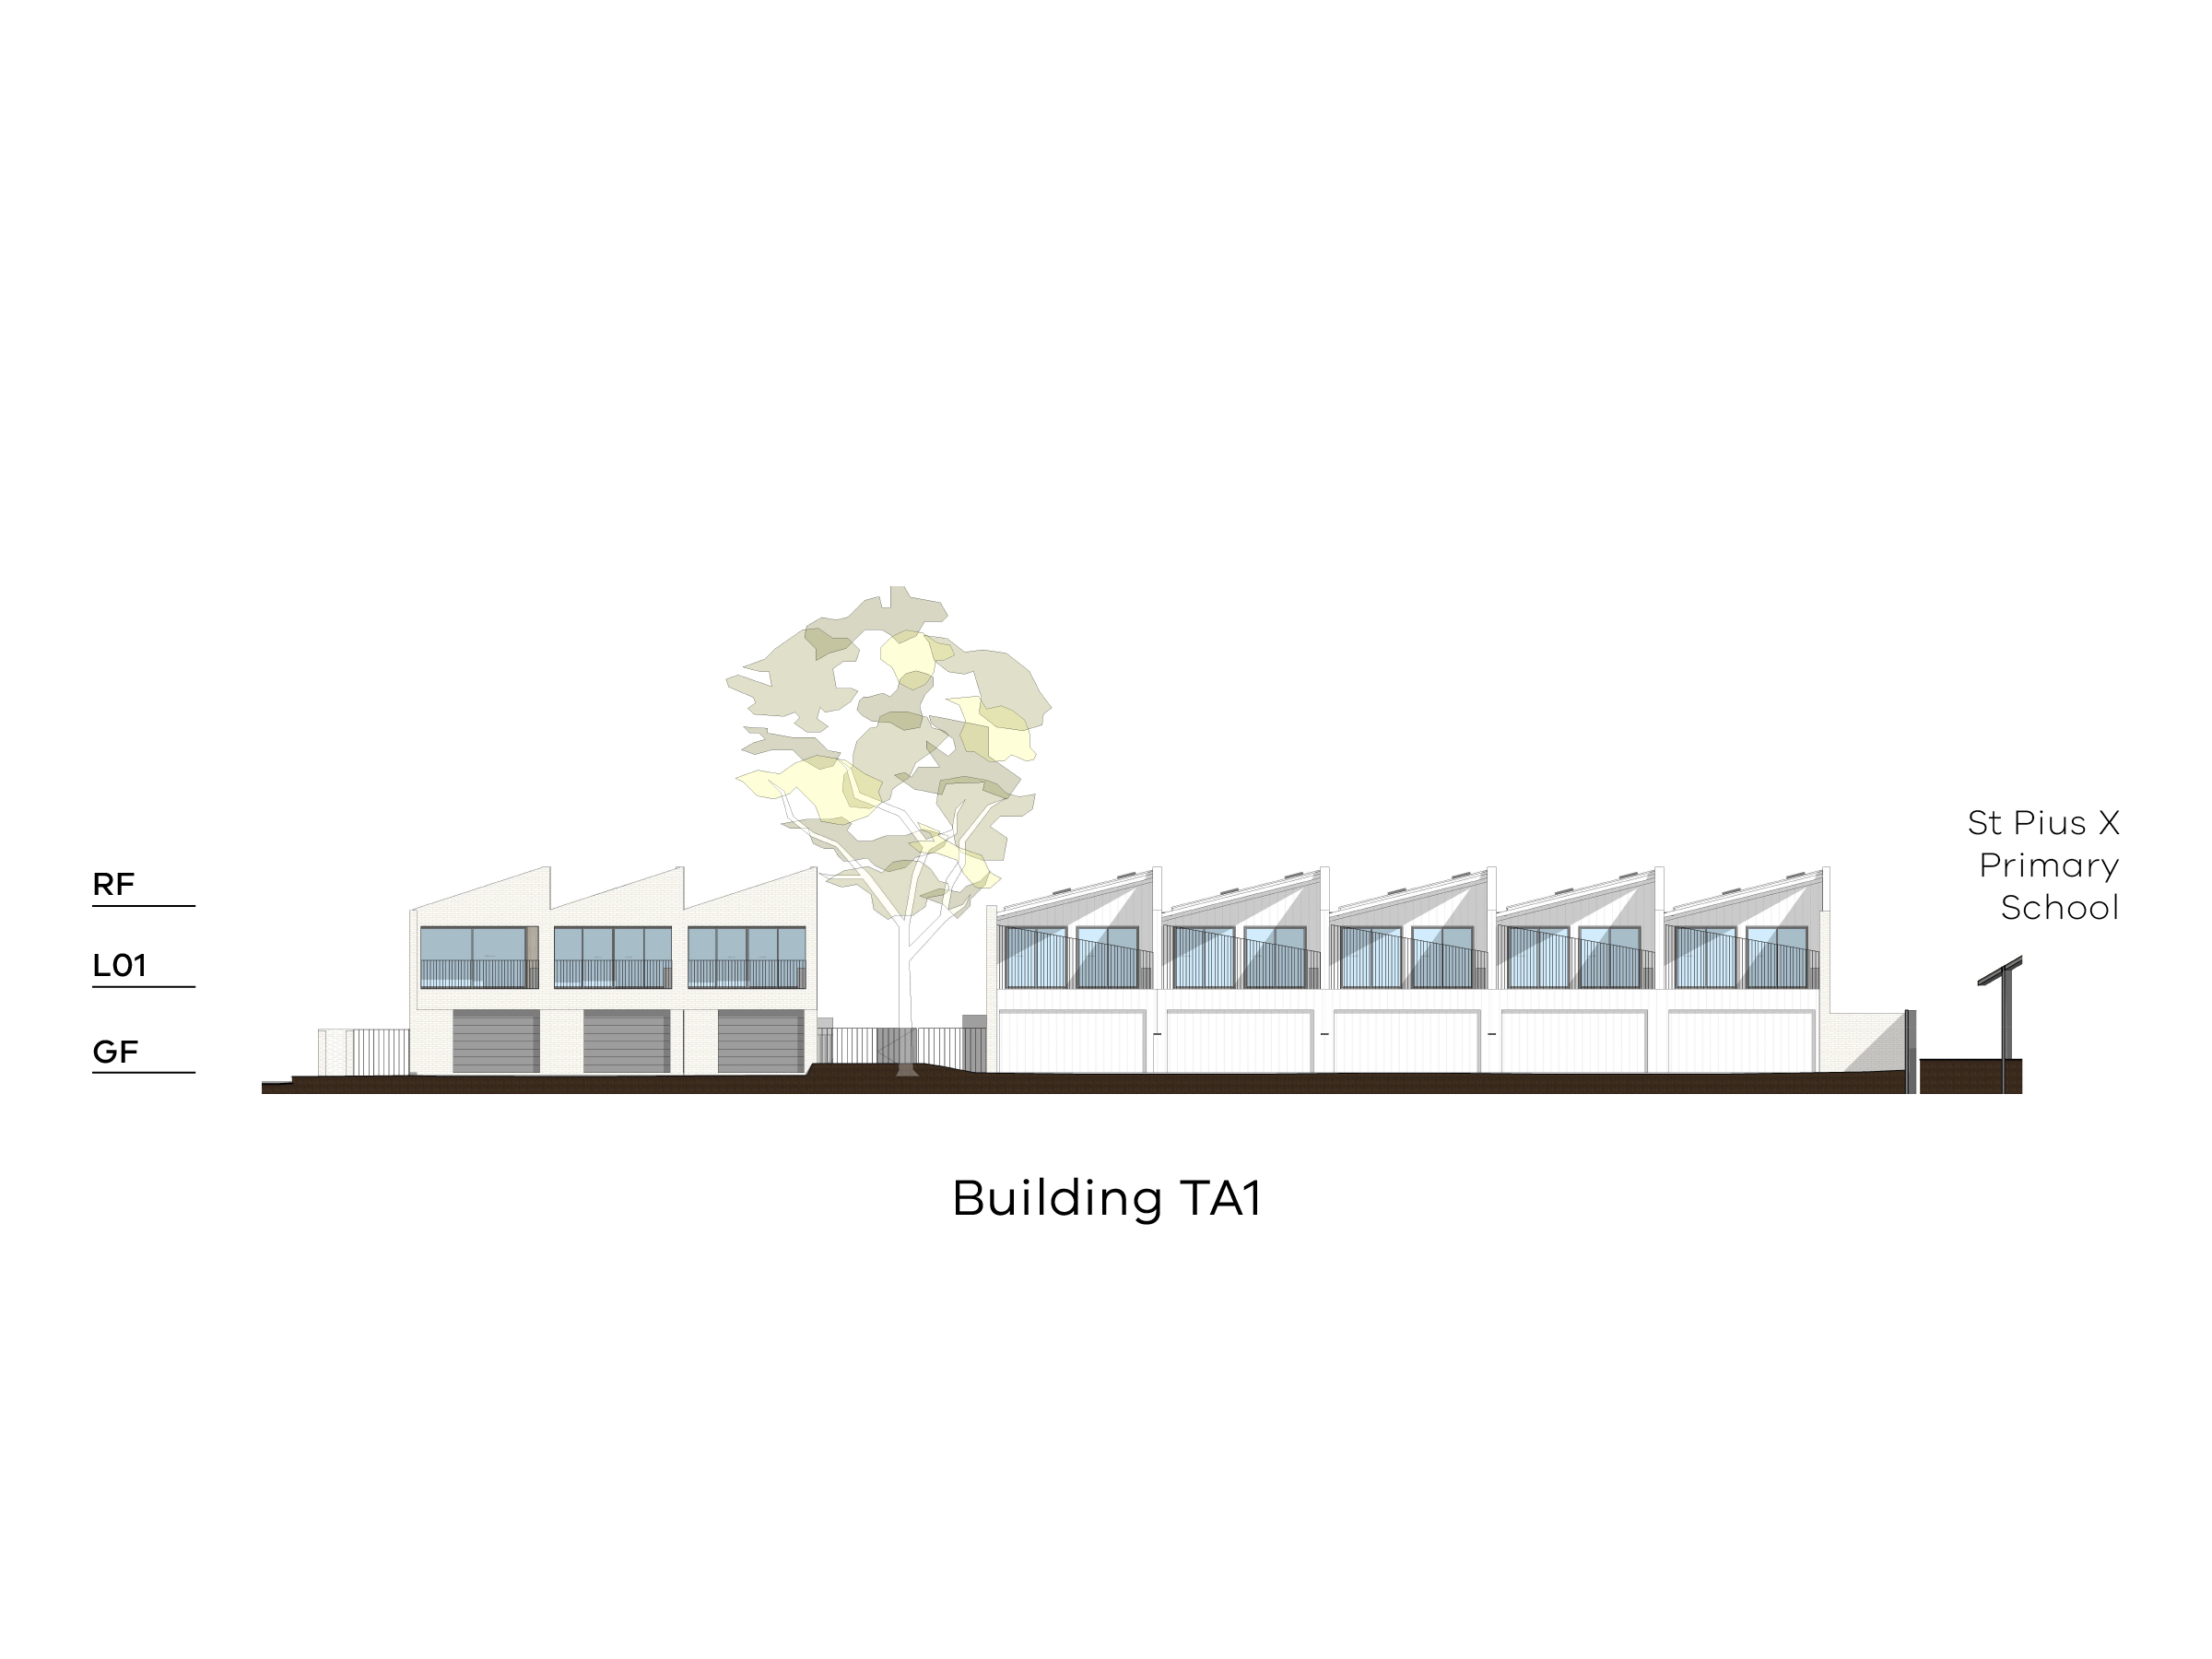 Diagram showing the height of building TA1 as seen from the paved area on site looking towards Altona Street. Building TA1 has a ground floor with a garage door, a level 1 and a sloped roof.